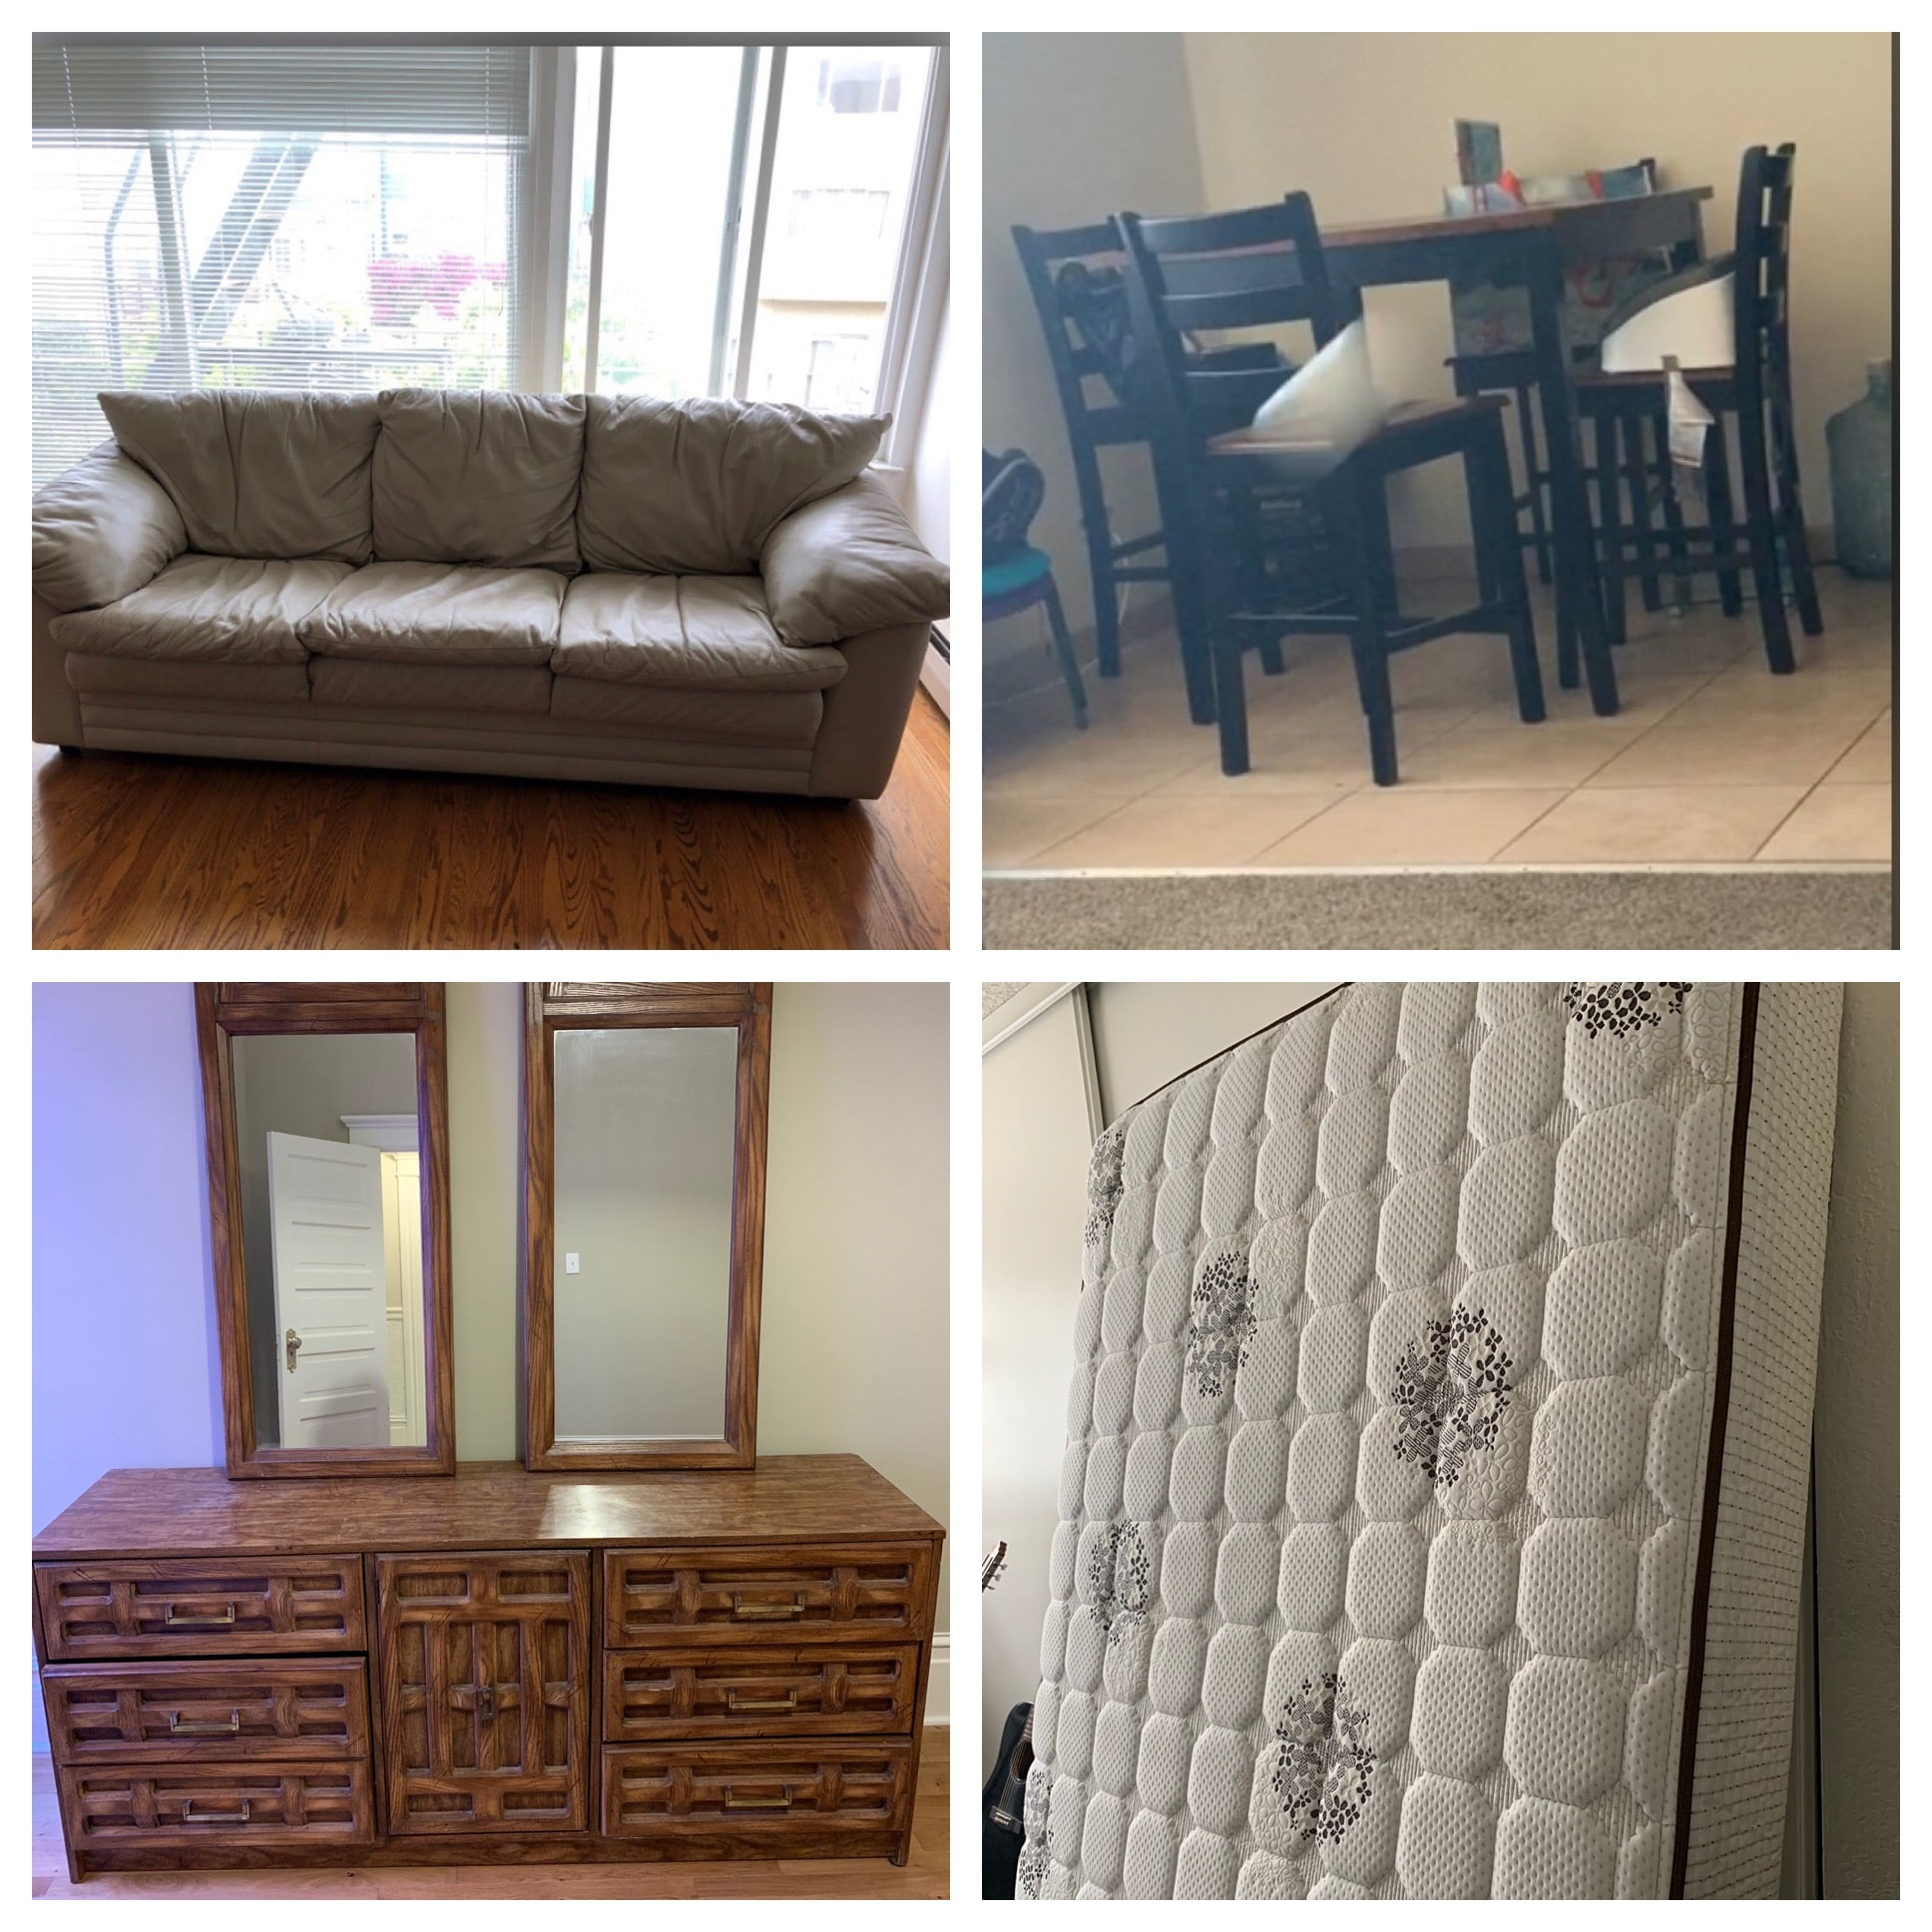 Furniture Removal - Residential Junk Removal - Junk Removal